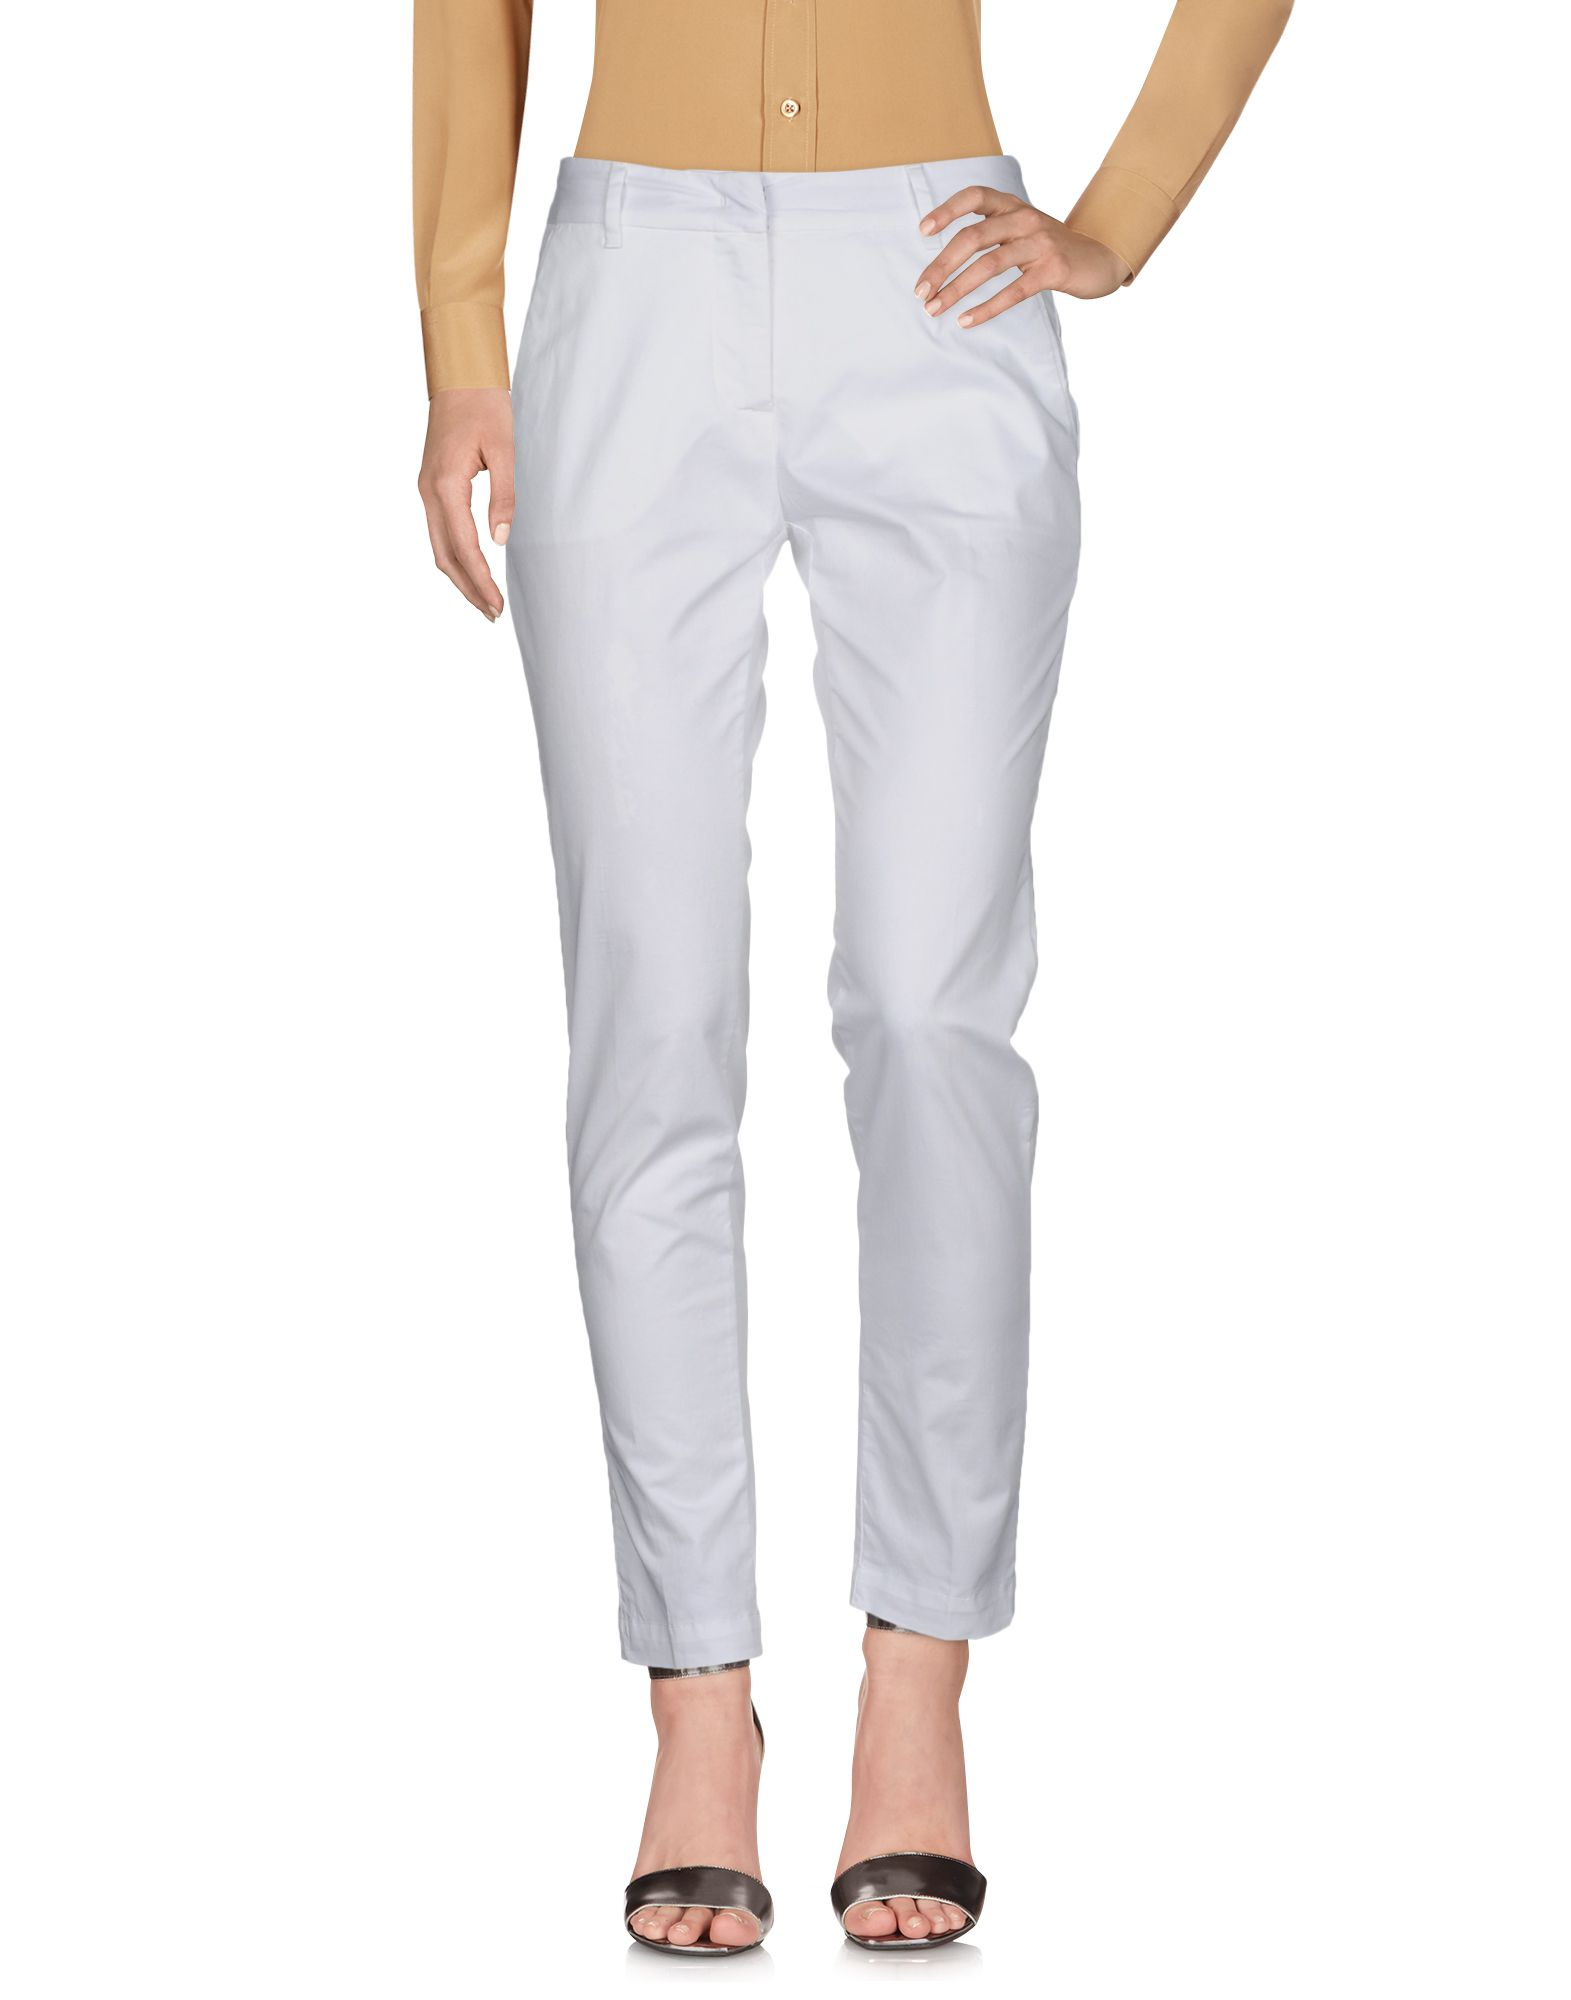 PERFECTION Casual Pants in White